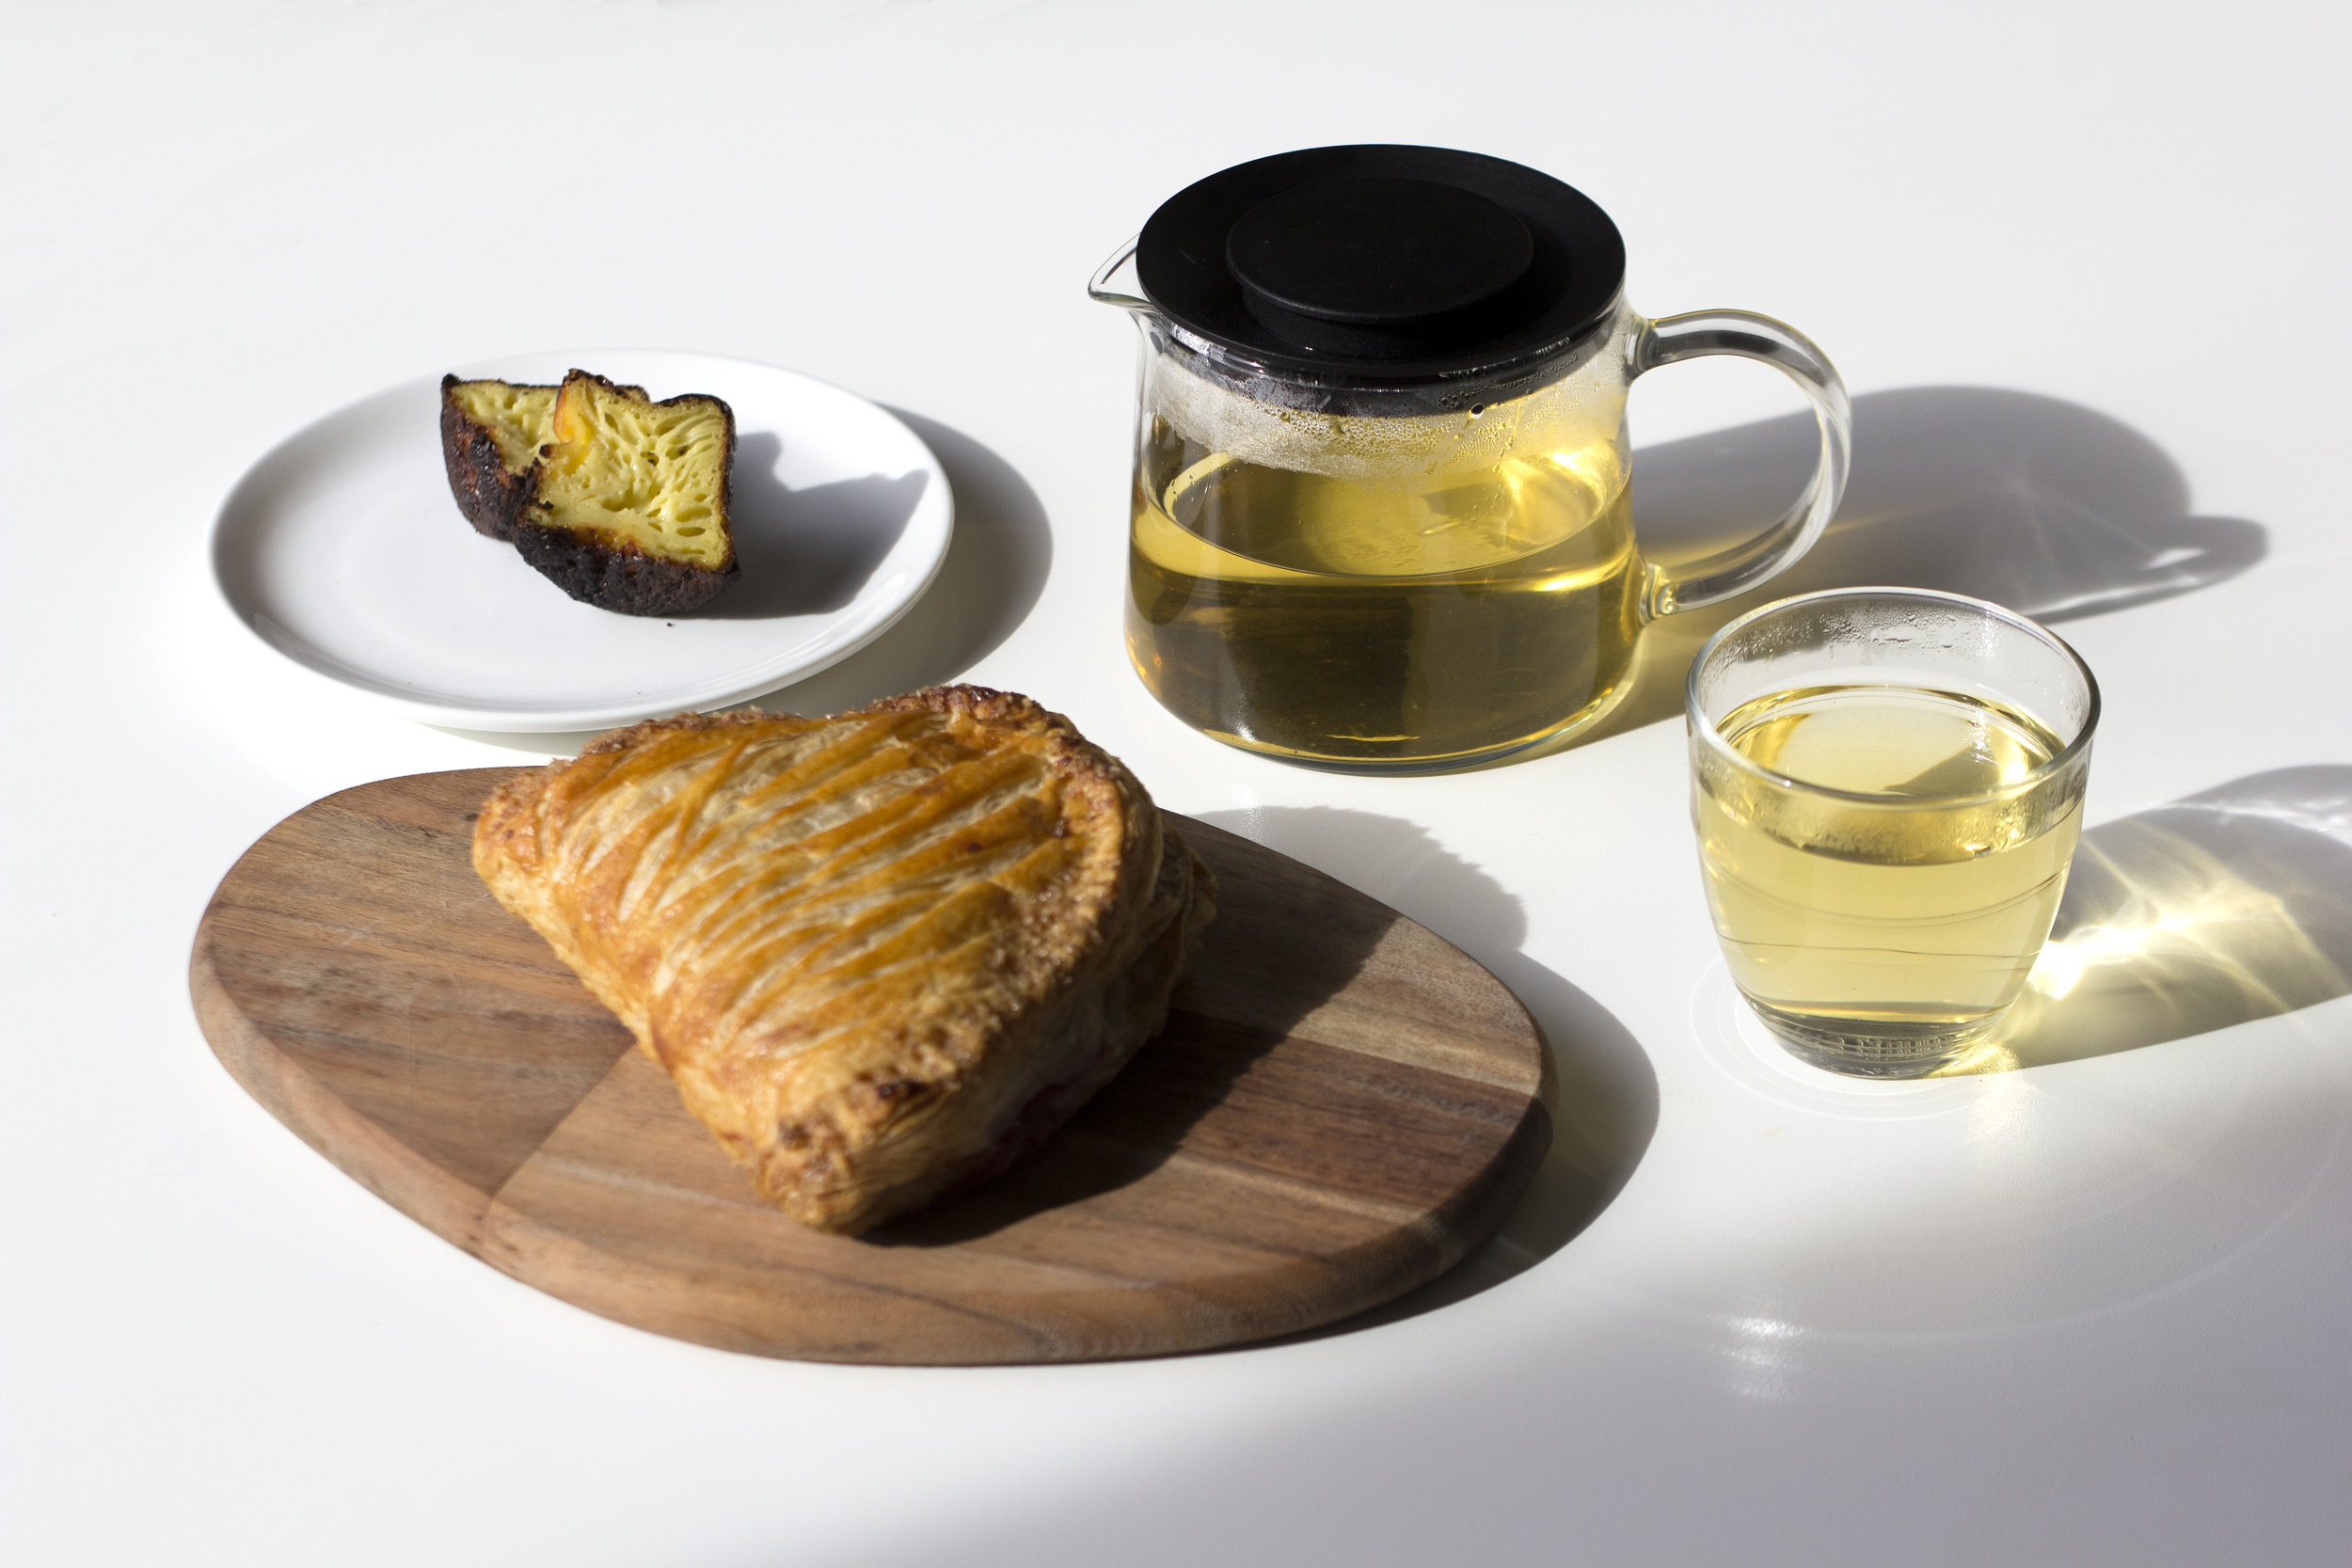 pastry and tea_2.jpg